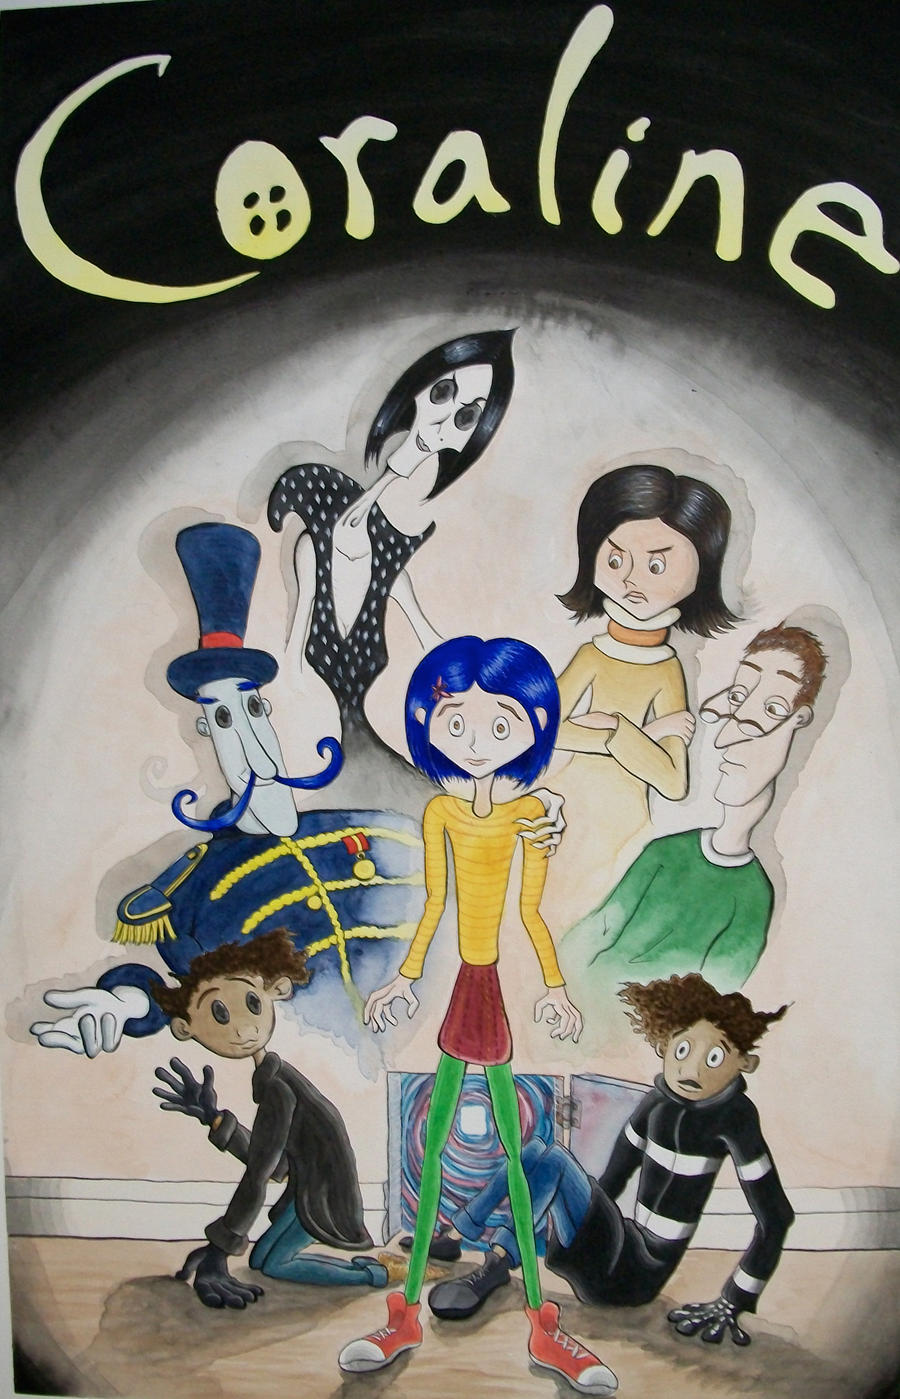 All Coraline Characters